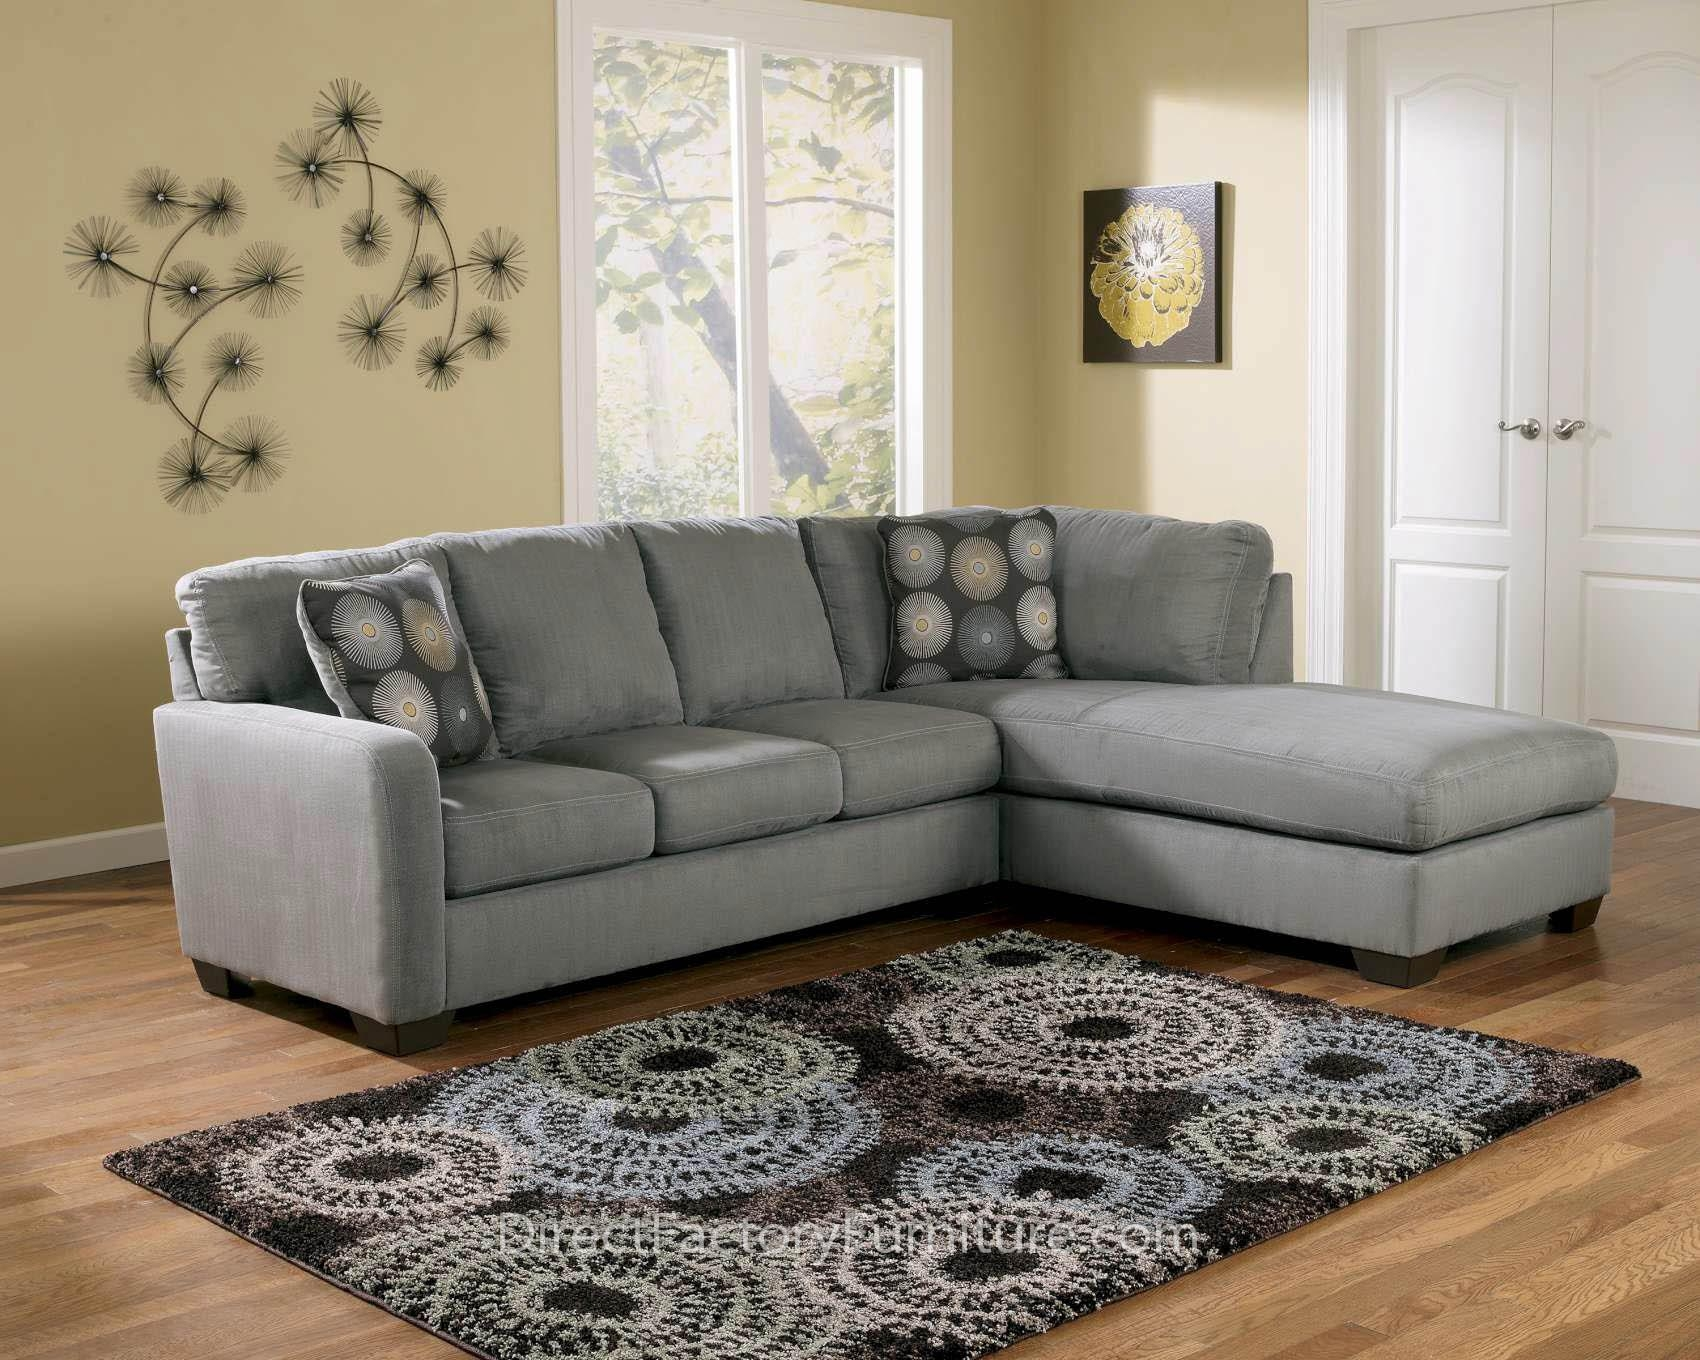 Media Room Sectional Sofas | Bjyoho With Media Room Sectional (Image 8 of 20)